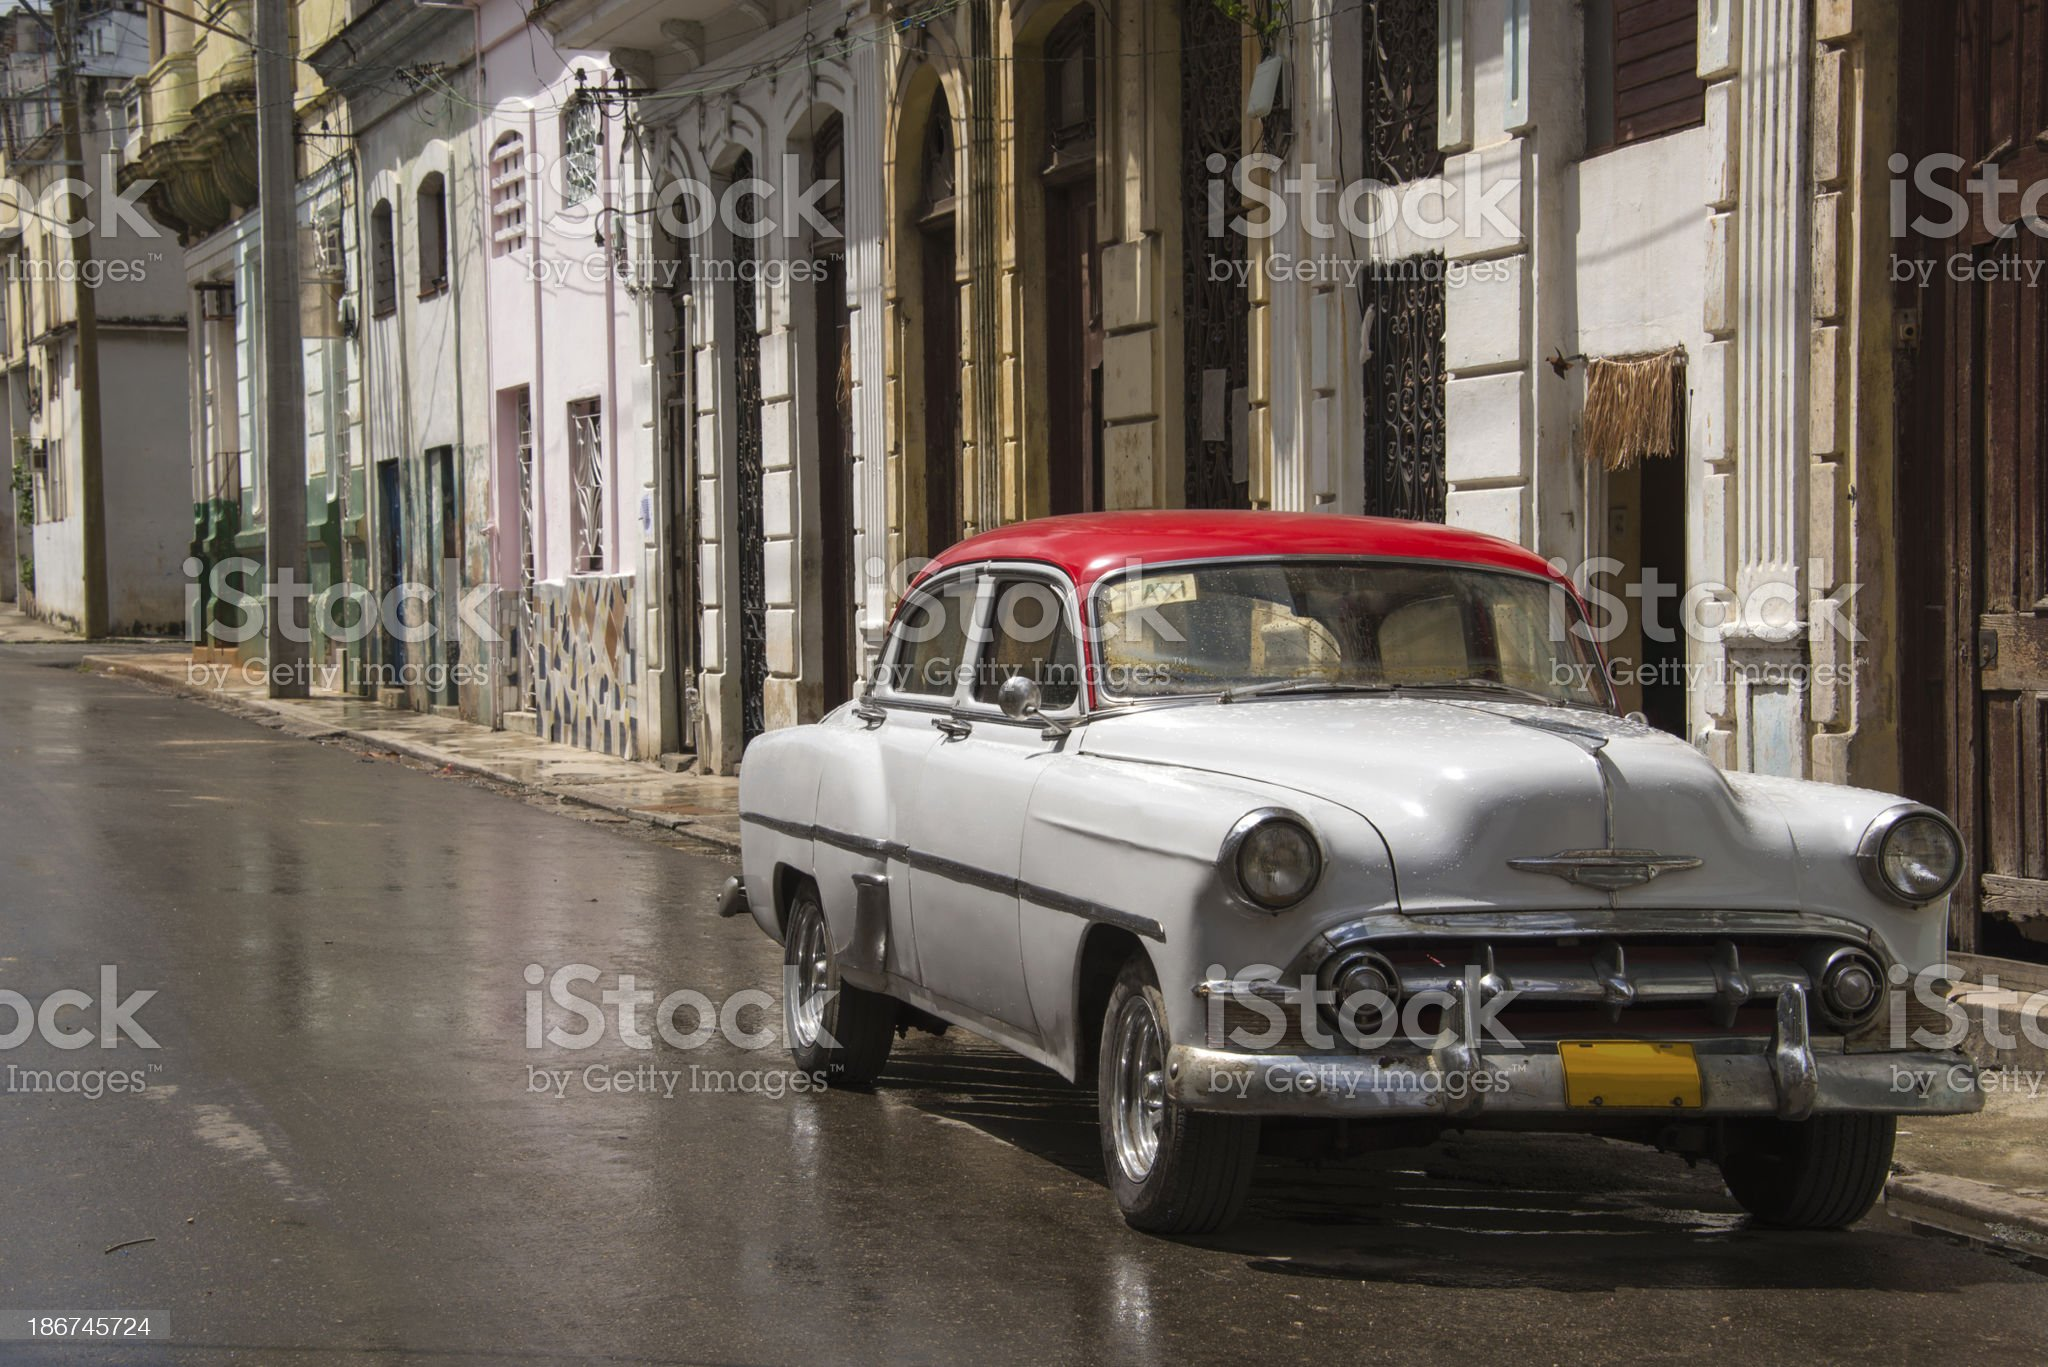 Red and White Vintage Car royalty-free stock photo